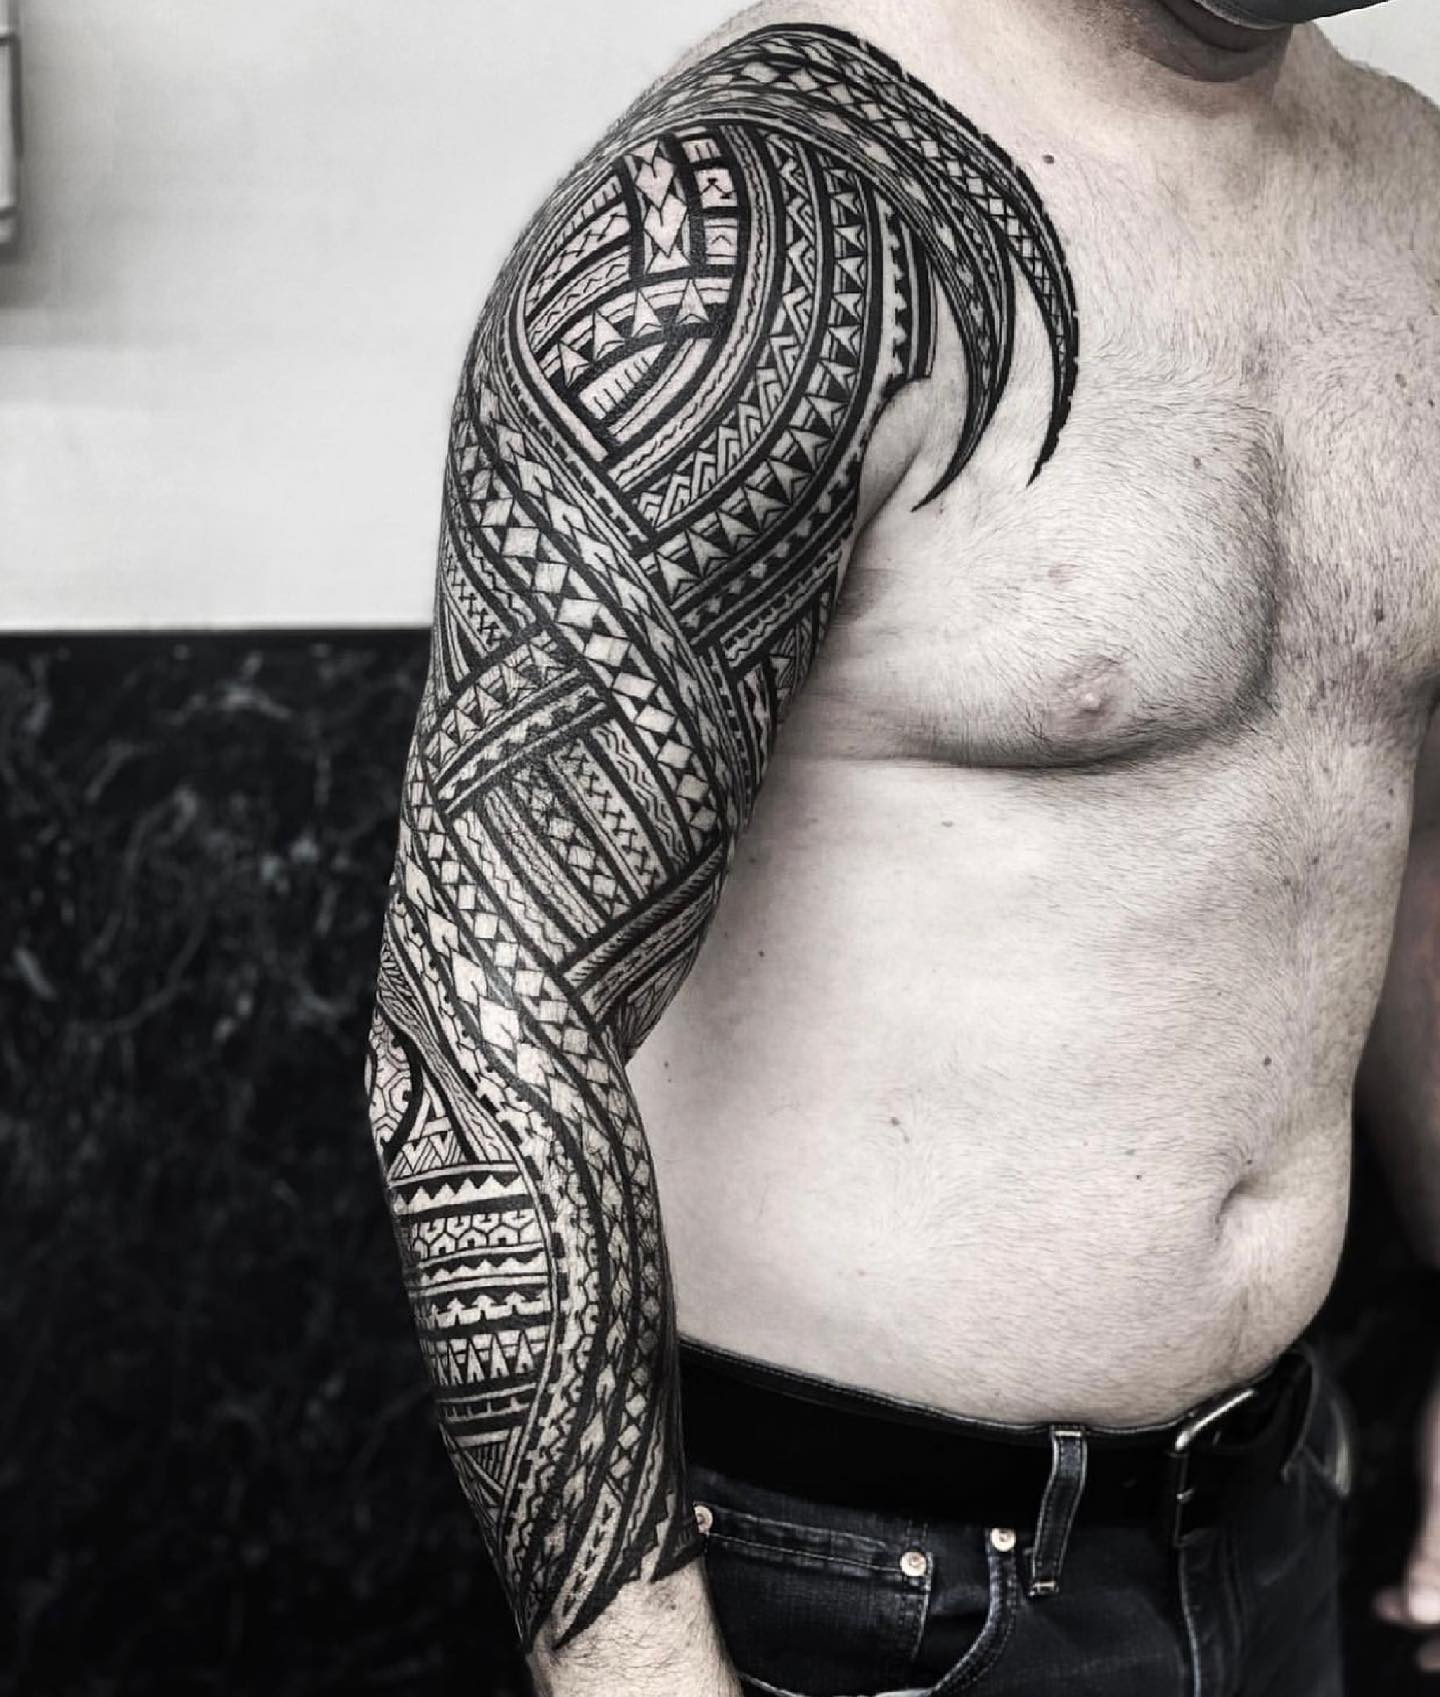 Cool sleeve by marcdiamondtattoo ✨  If you would like to get tattooed, then please fill out the tattoo enquiry form on our website 💫                           totaltattoo barber_dts easytattoo_uk eternalink dynamiccolor lockdownneedle stencilstuff